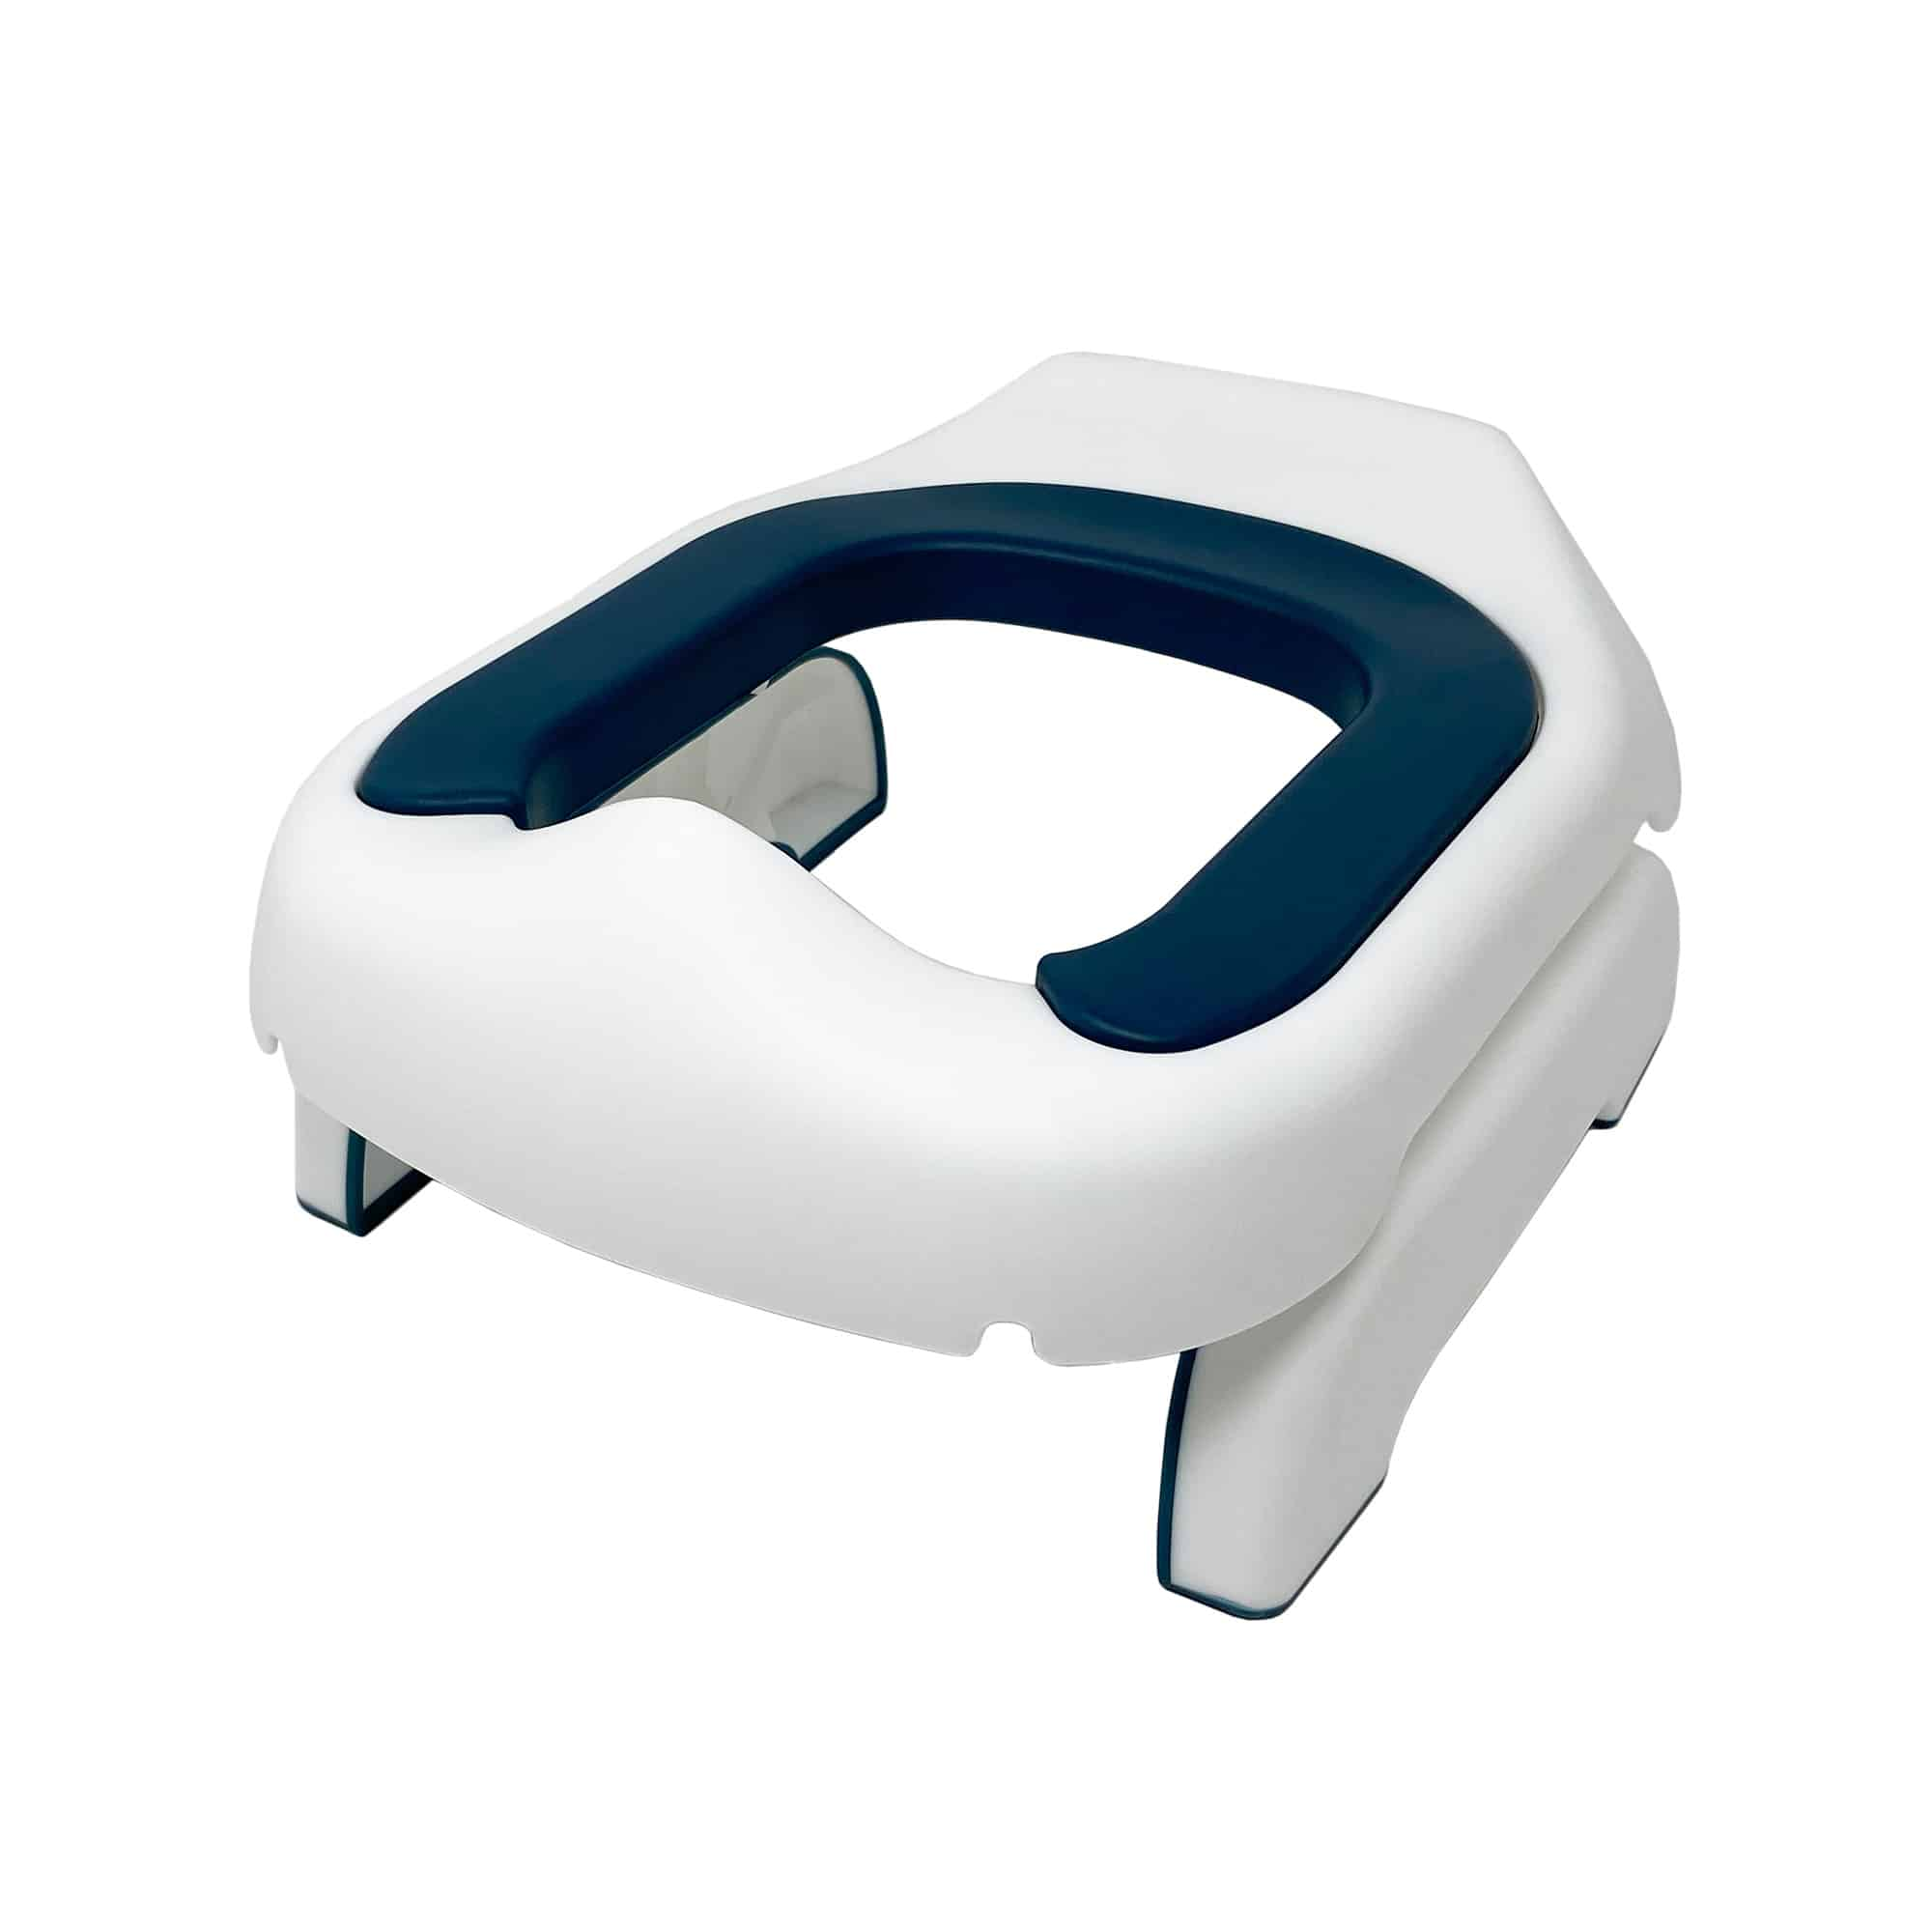 Pote Plus travel potty in Blue